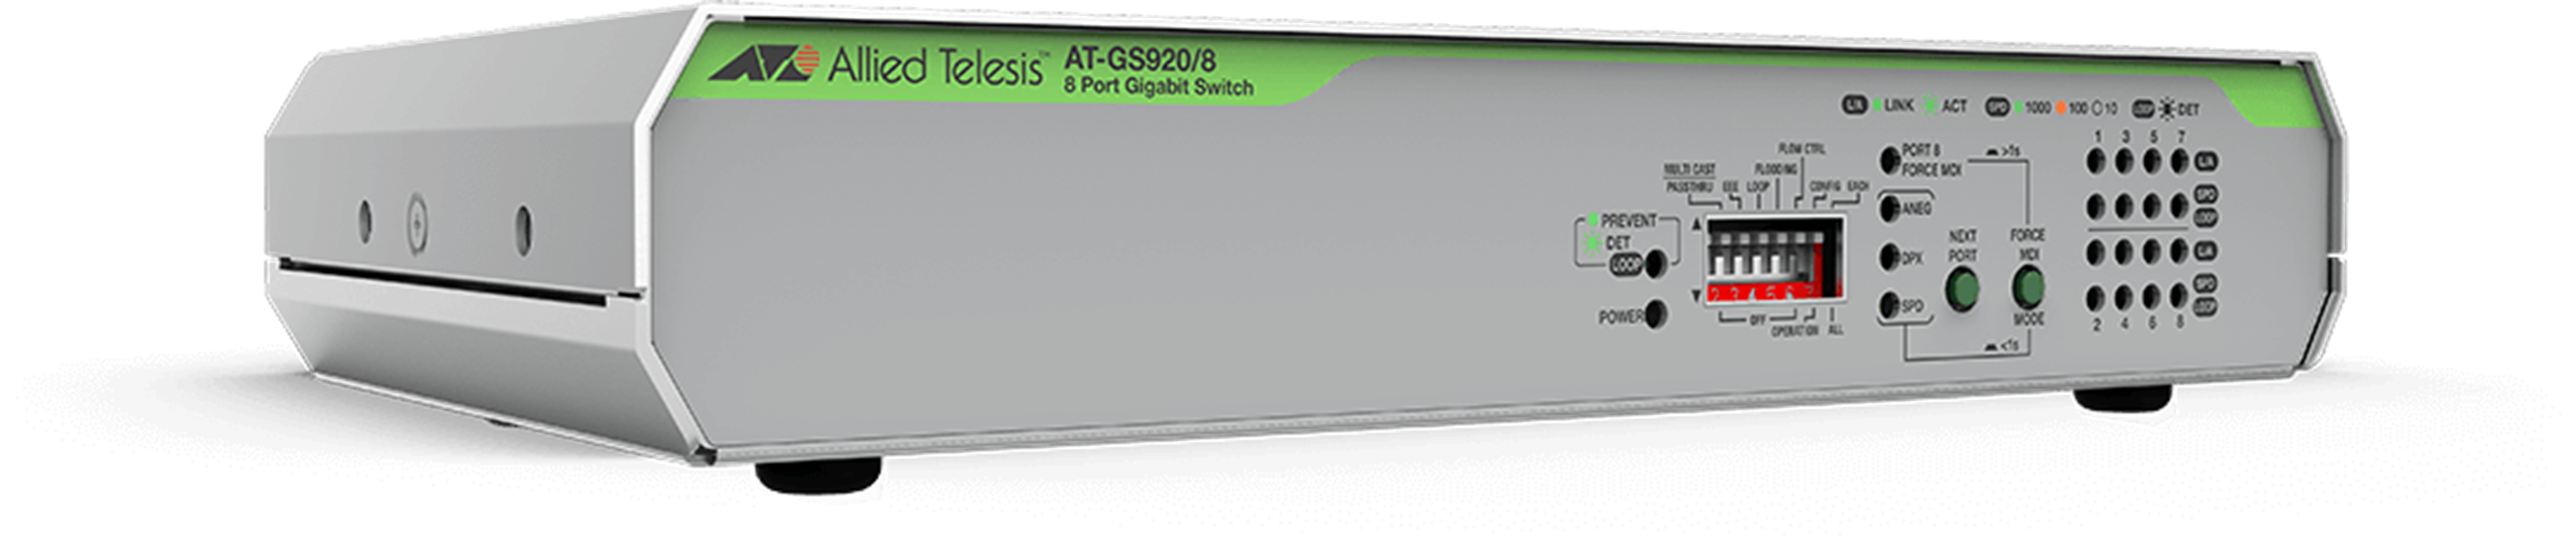 AT-GS920 Series - Unmanaged Gigabit Switch (Loop Protection)